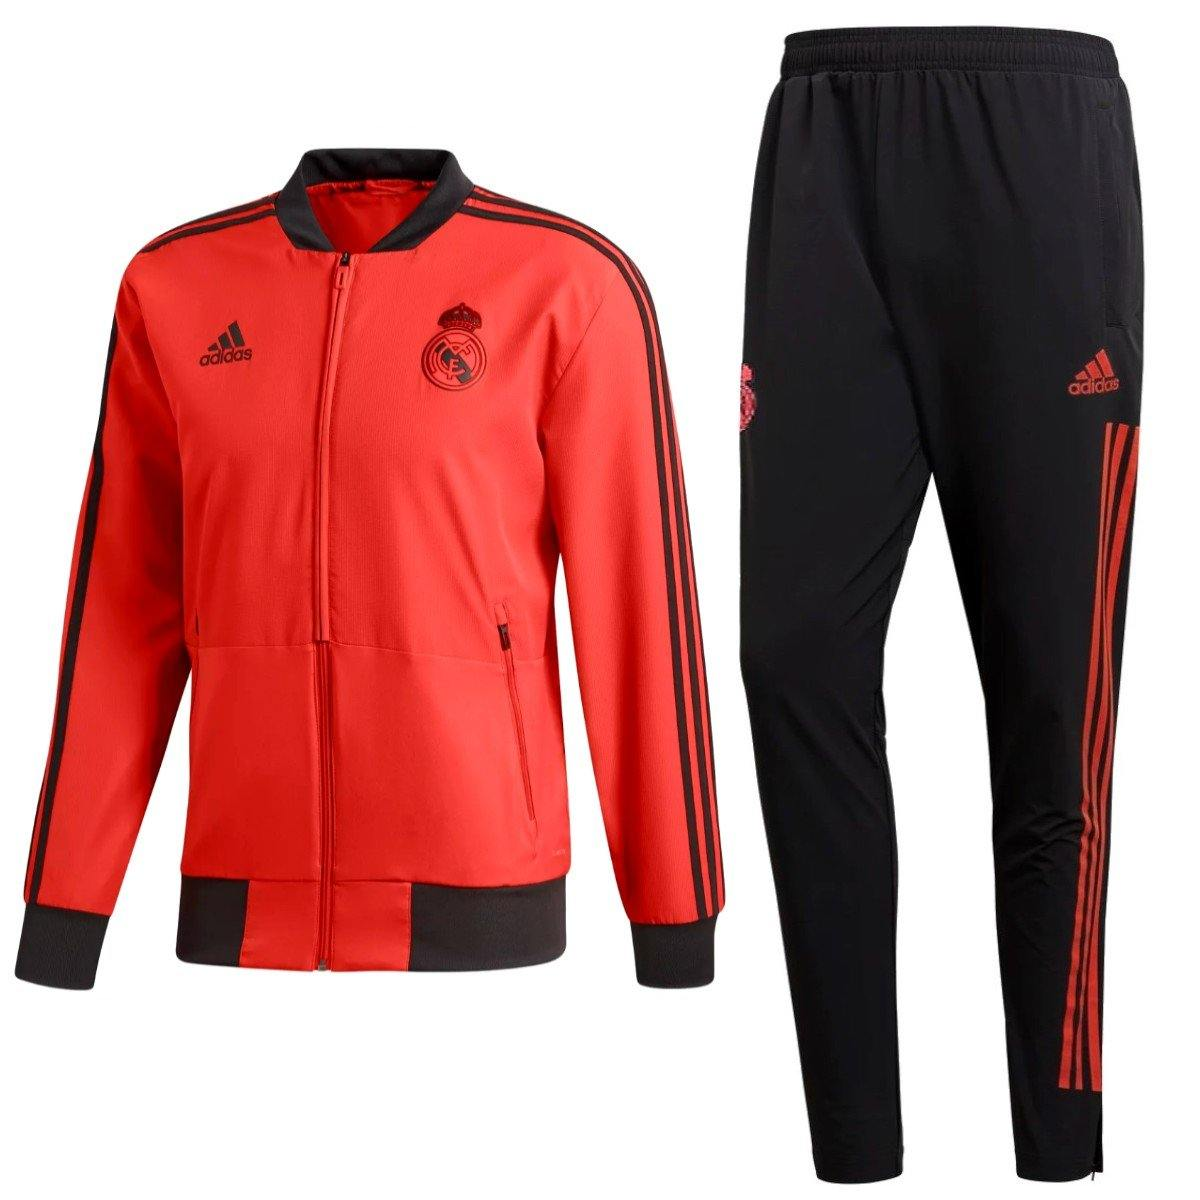 a8f1d0525 Real Madrid training presentation soccer tracksuit UCL 2018 19 - Adida –  SoccerTracksuits.com